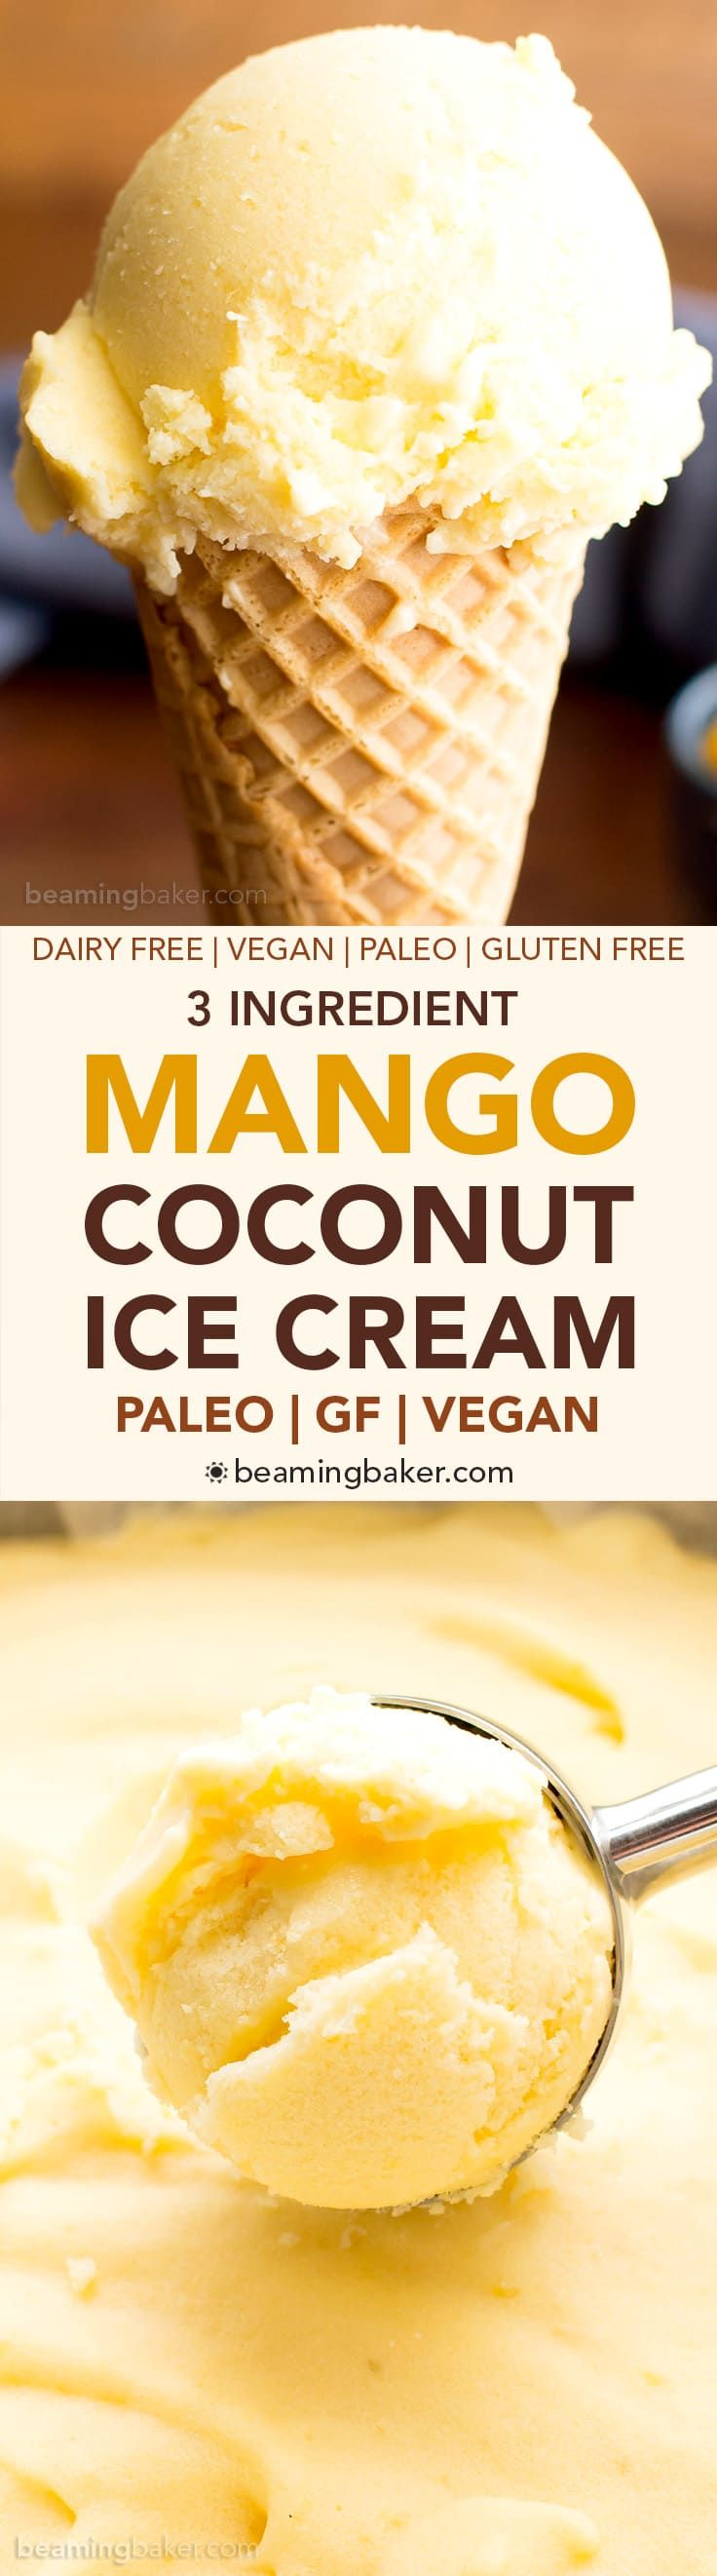 3 Ingredient Mango Coconut Vegan Ice Cream (V, DF, Paleo): an easy, no-churn recipe for deliciously creamy mango ice cream bursting with coconut flavor!